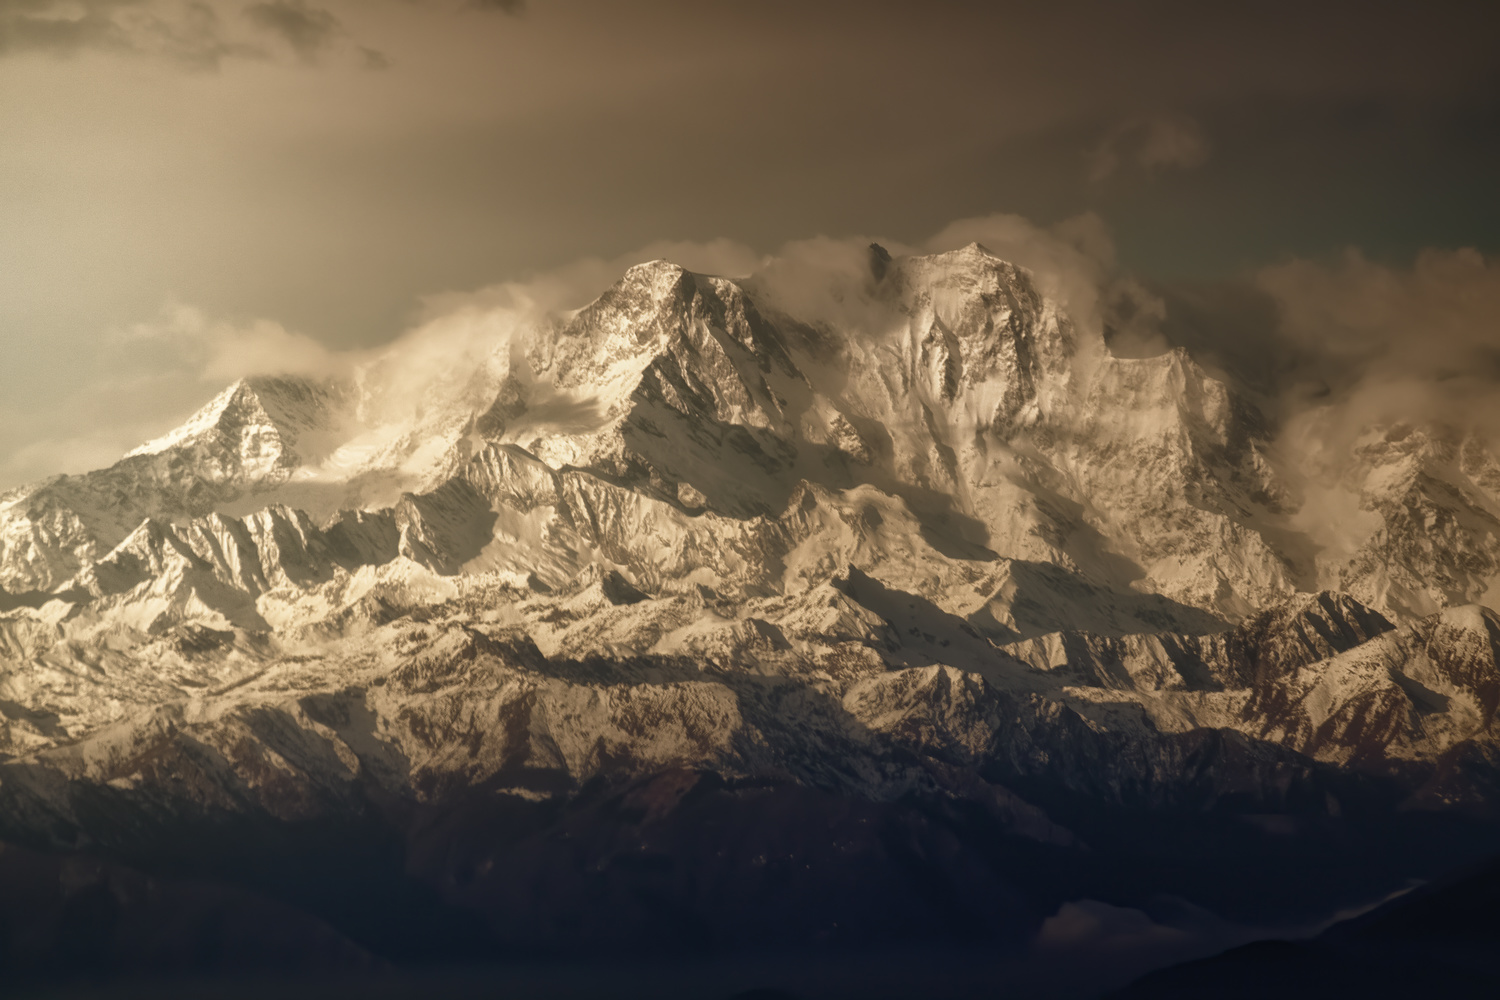 Not everything will be dolomites in the Italian Alps by DaniGviews /Daniel